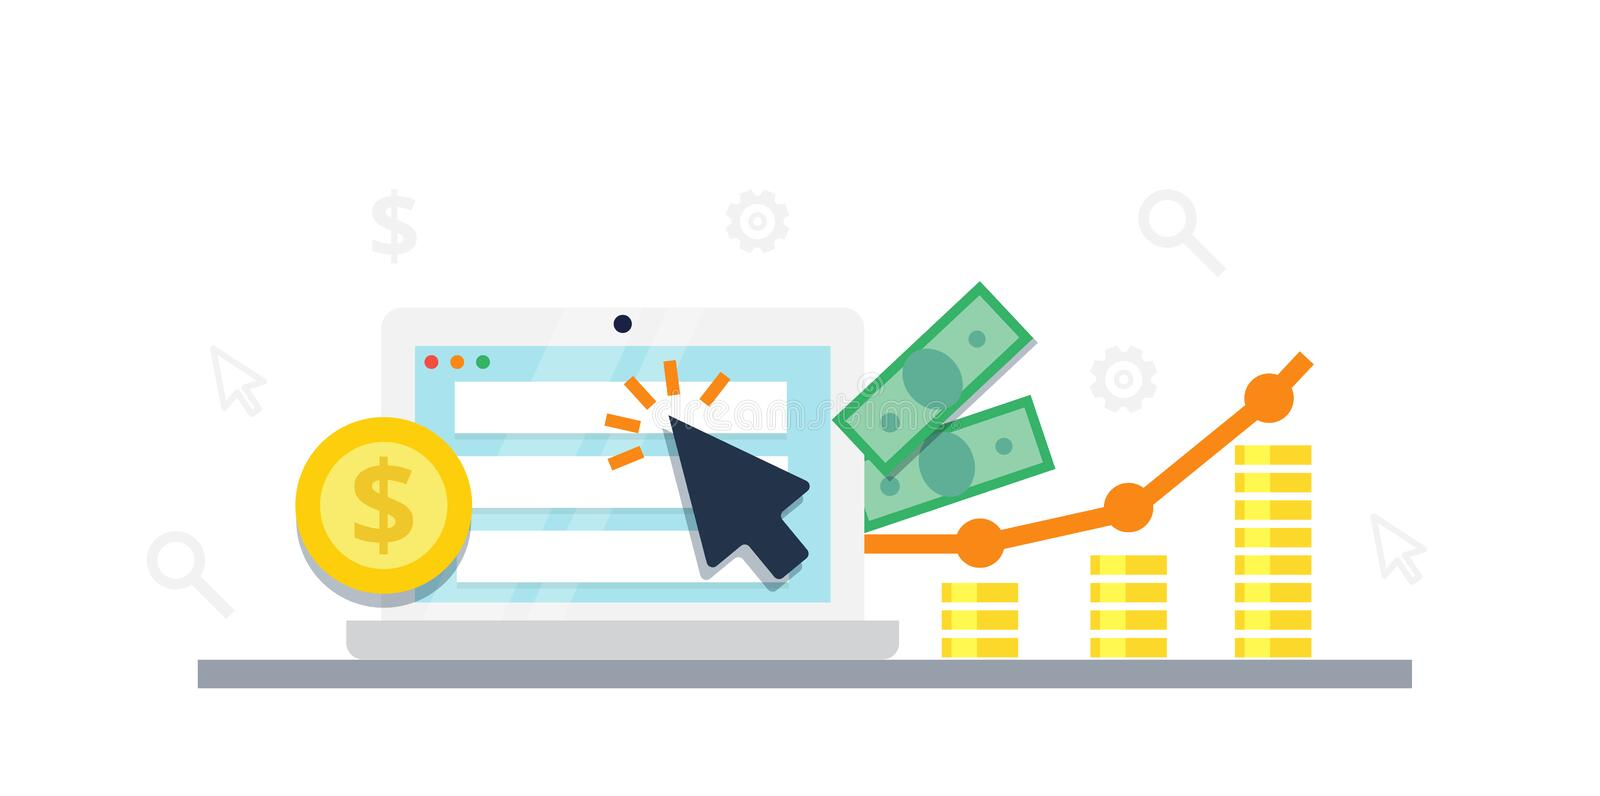 Pay Per Click internet marketing concept - flat illustration. PPC advertising and conversion. Pay Per Click internet marketing concept - flat illustration vector illustration